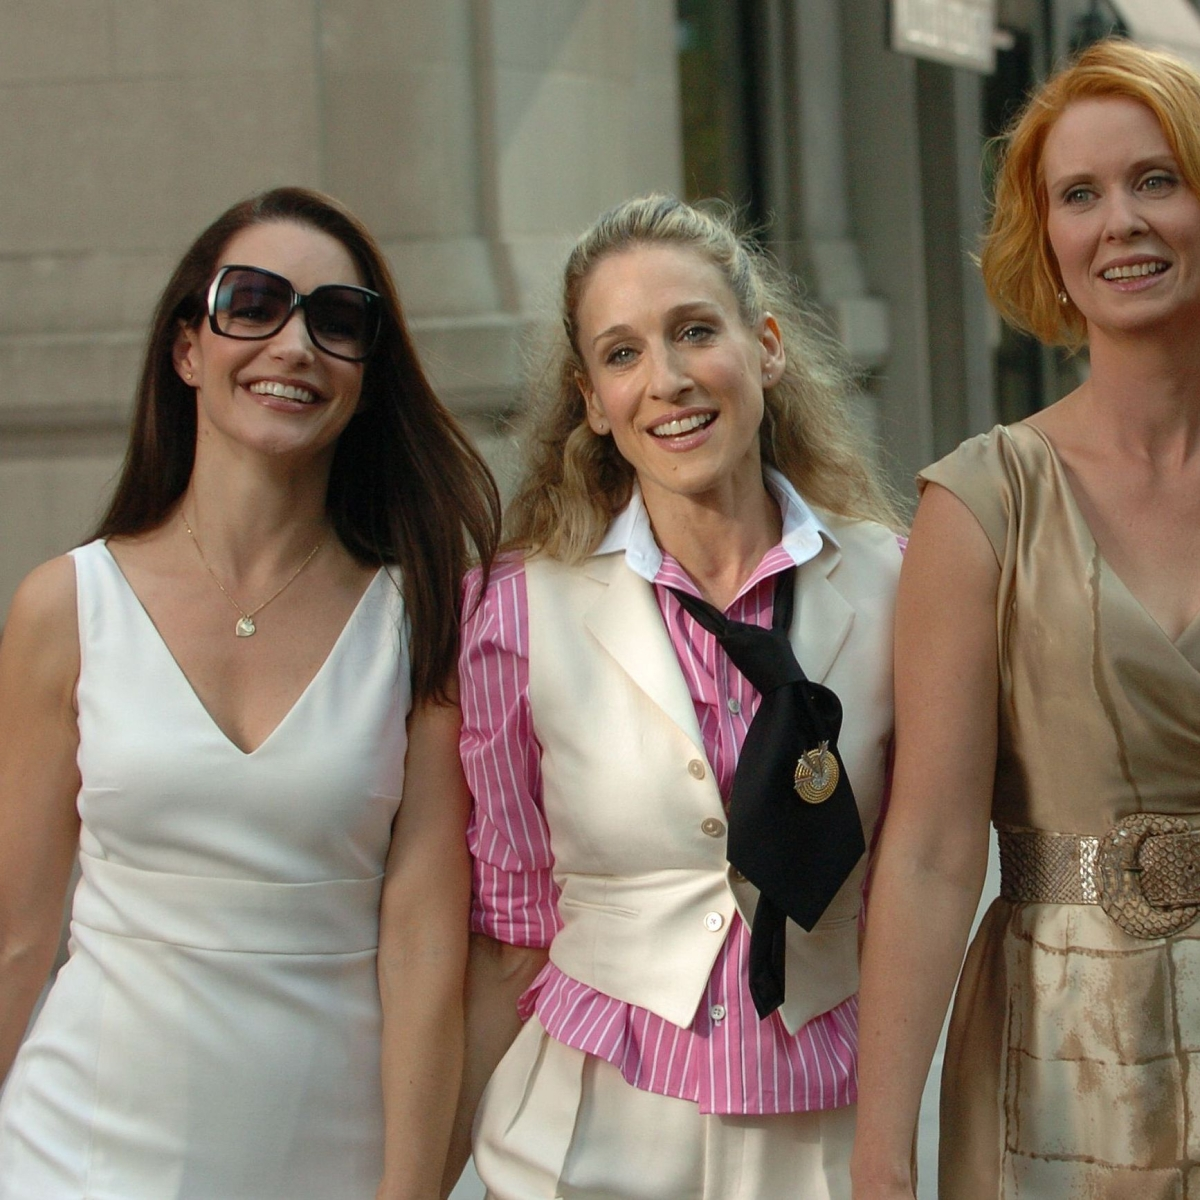 Chick-flick drama 'Sex and the City' set for revival at HBO Max